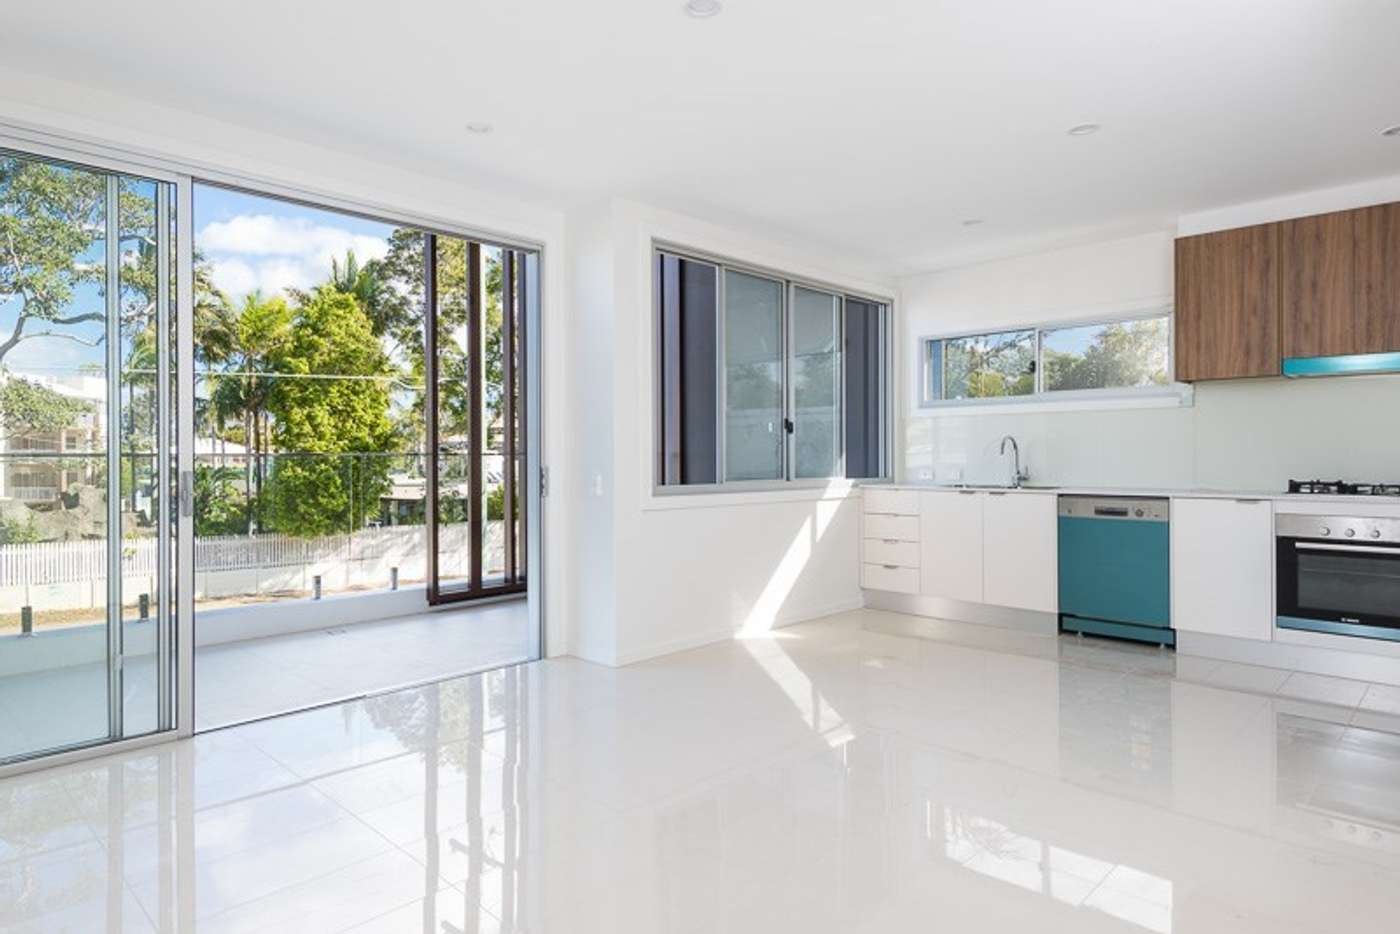 Main view of Homely apartment listing, 8/22 Bay Terrace, Wynnum QLD 4178